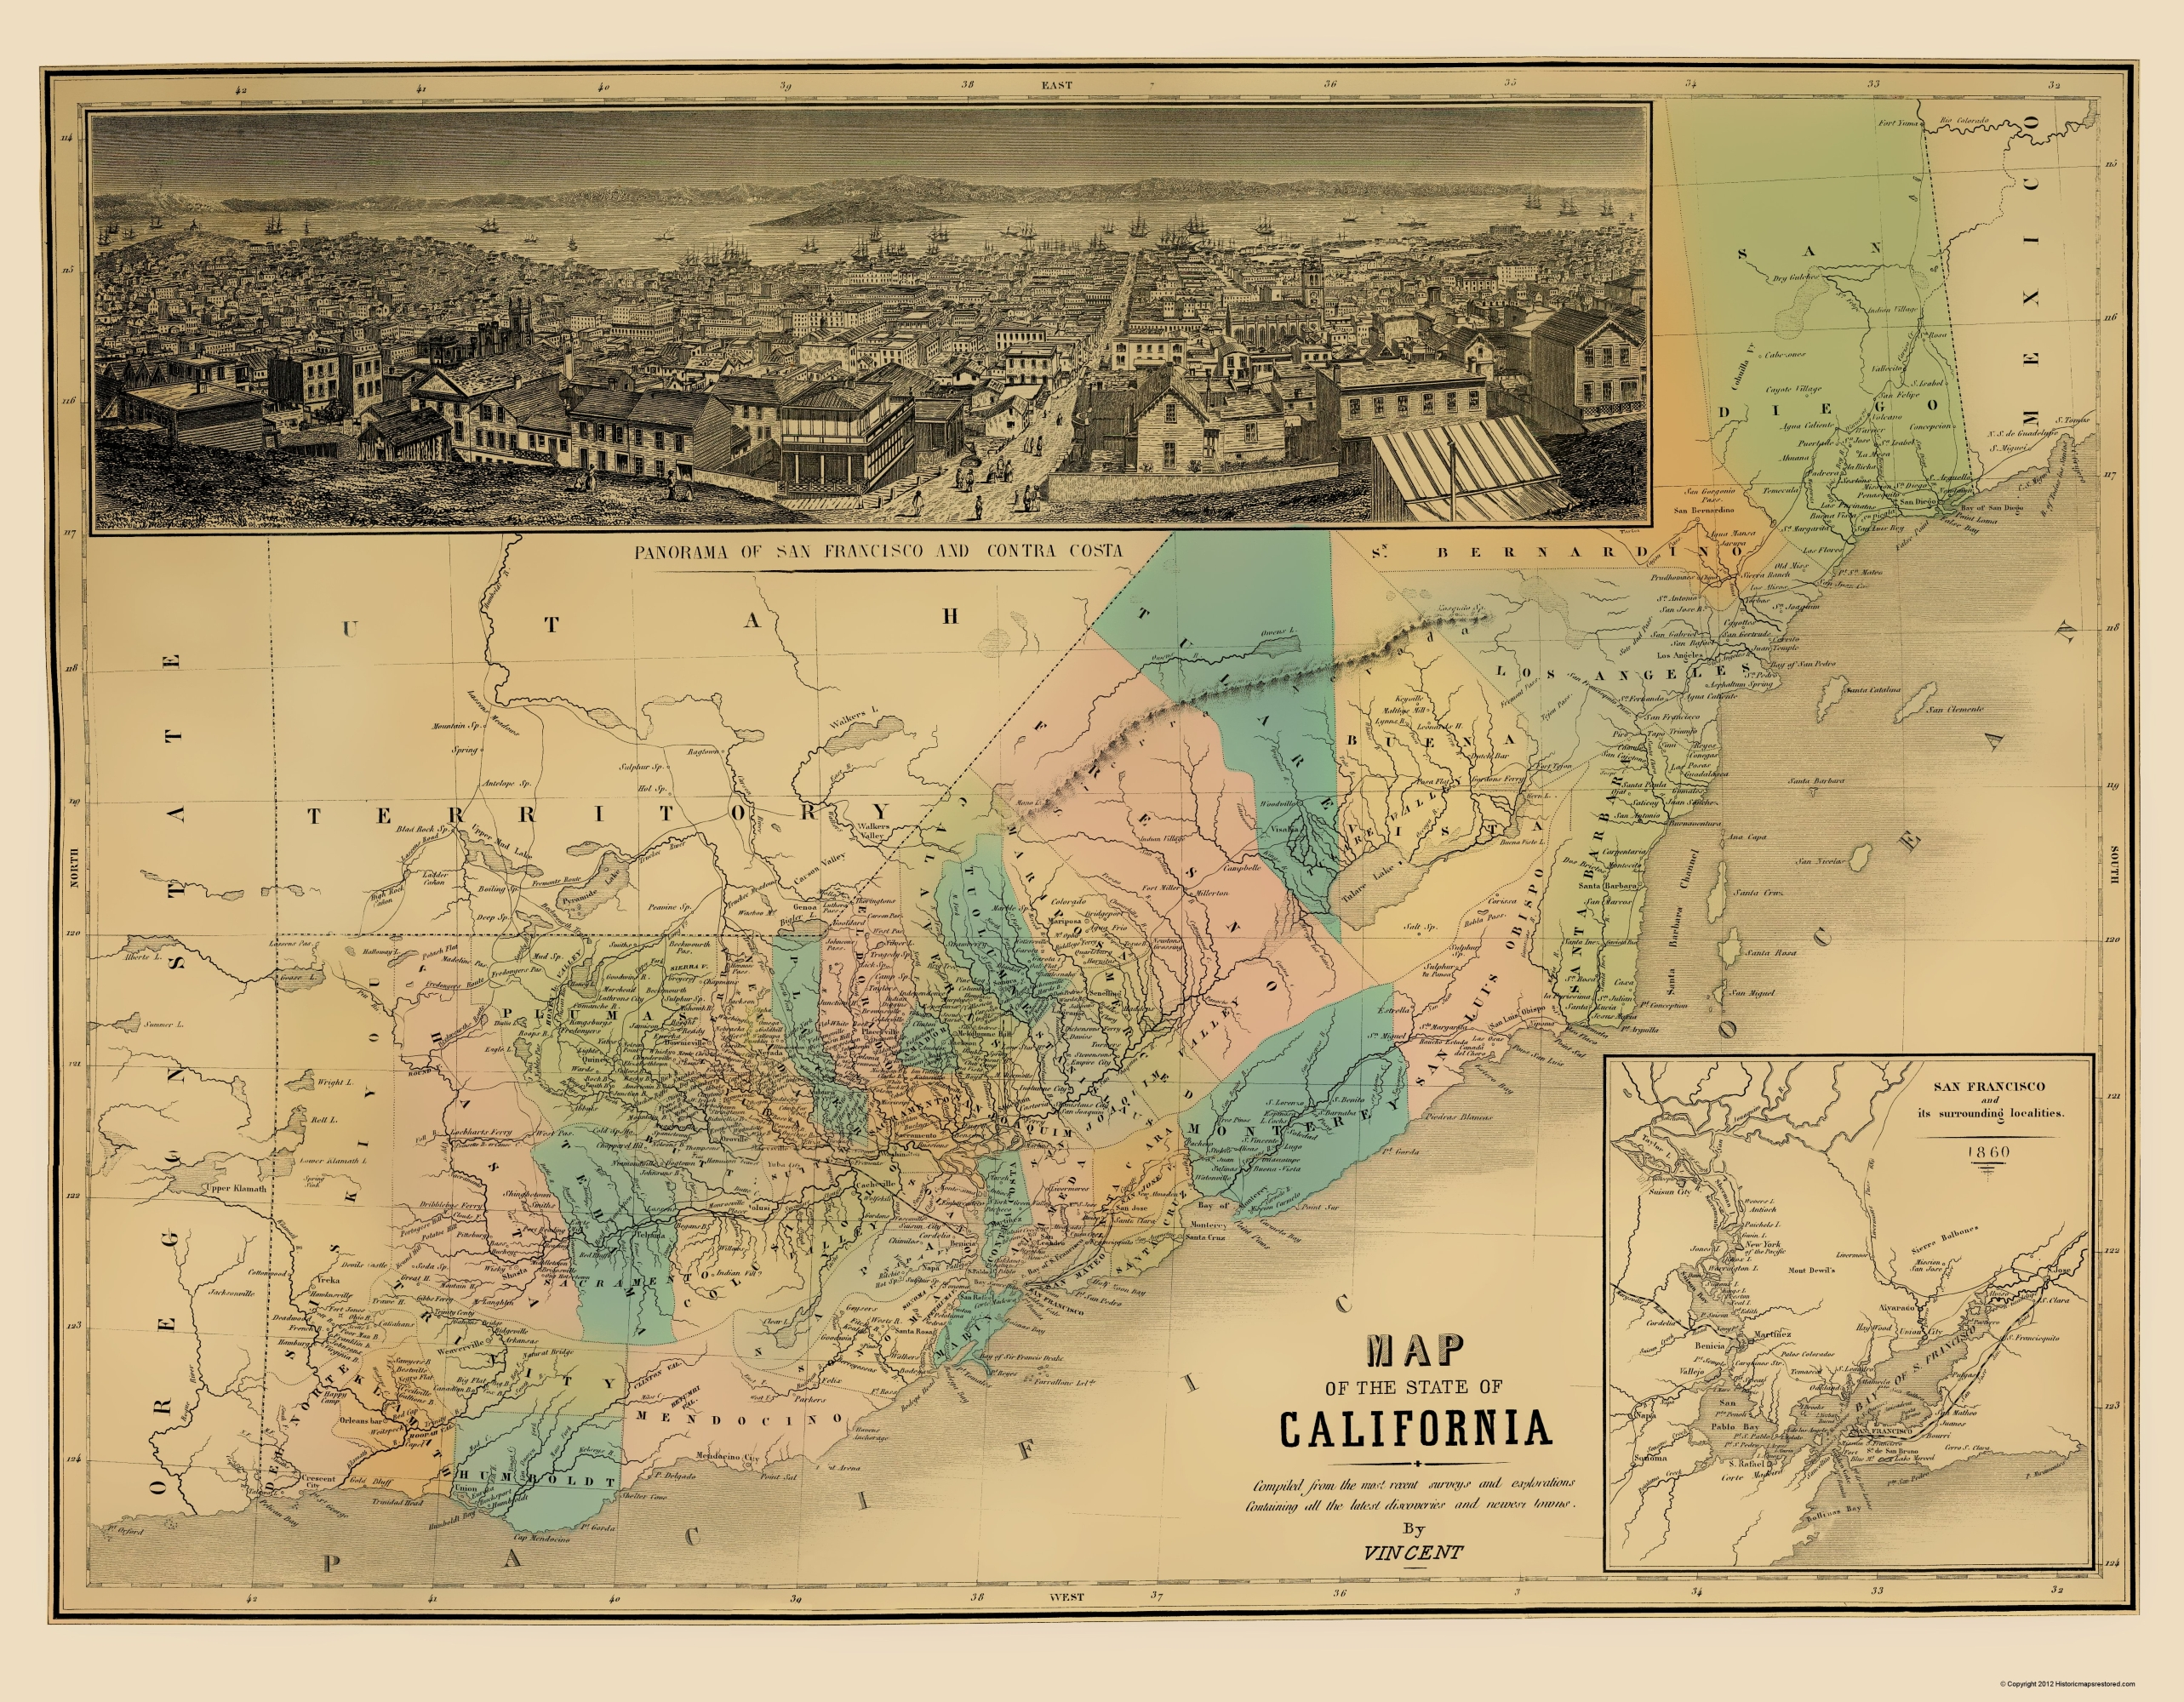 Old Map California Vincent 1860